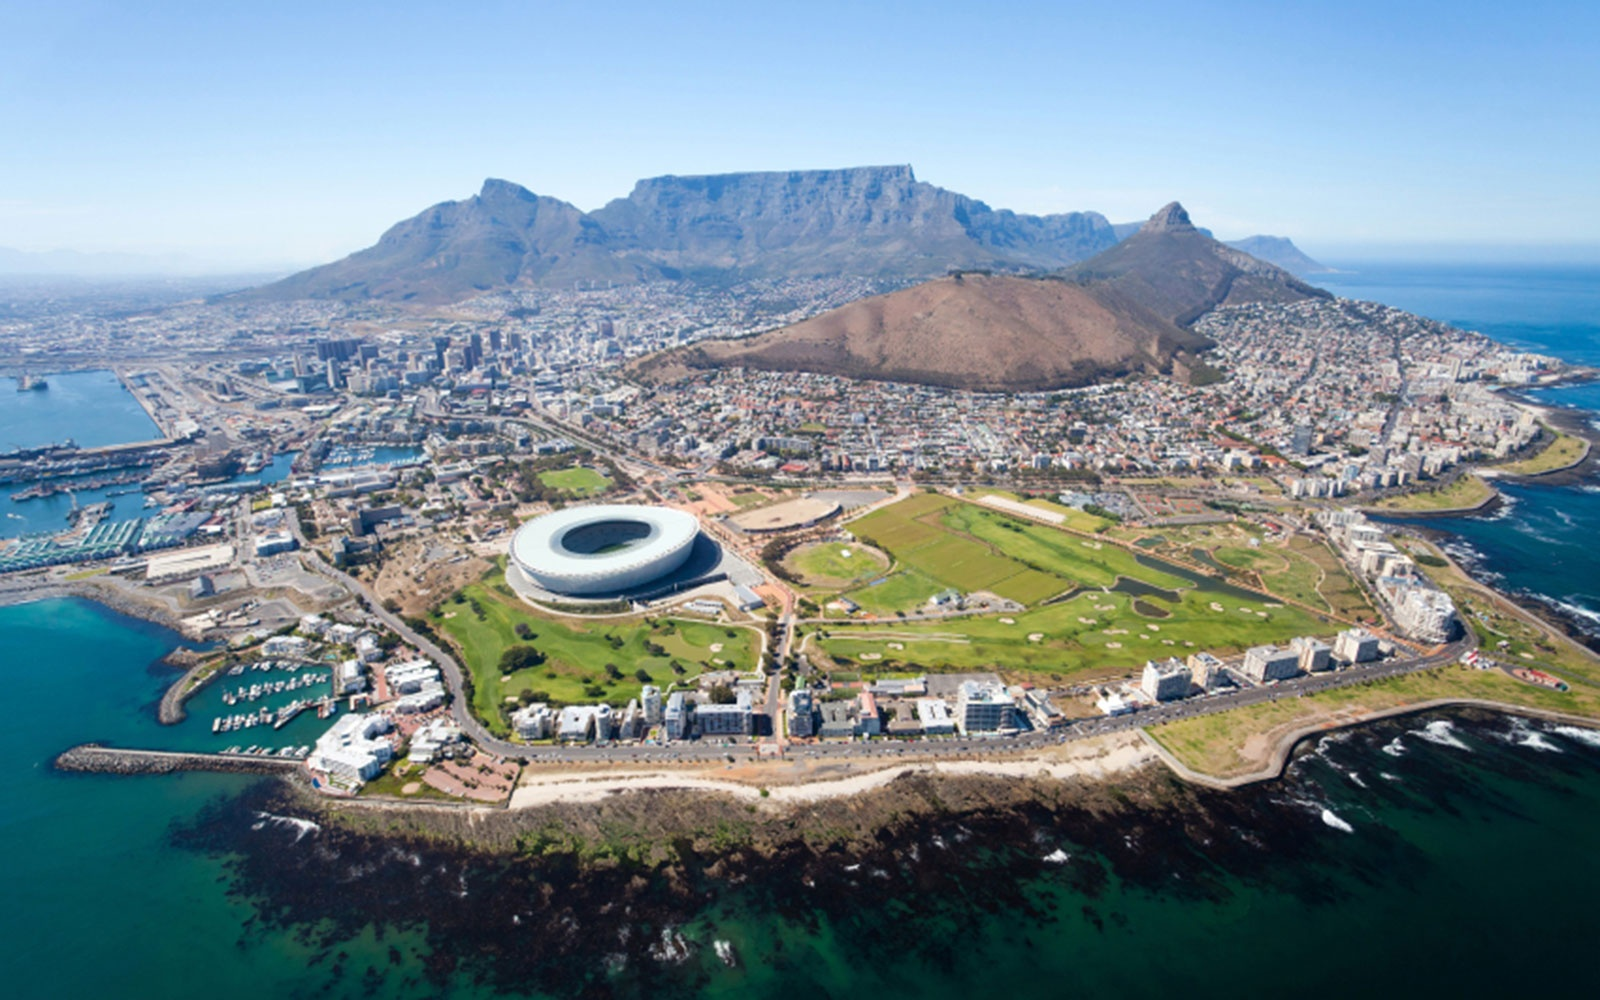 10. Cape Town Airport